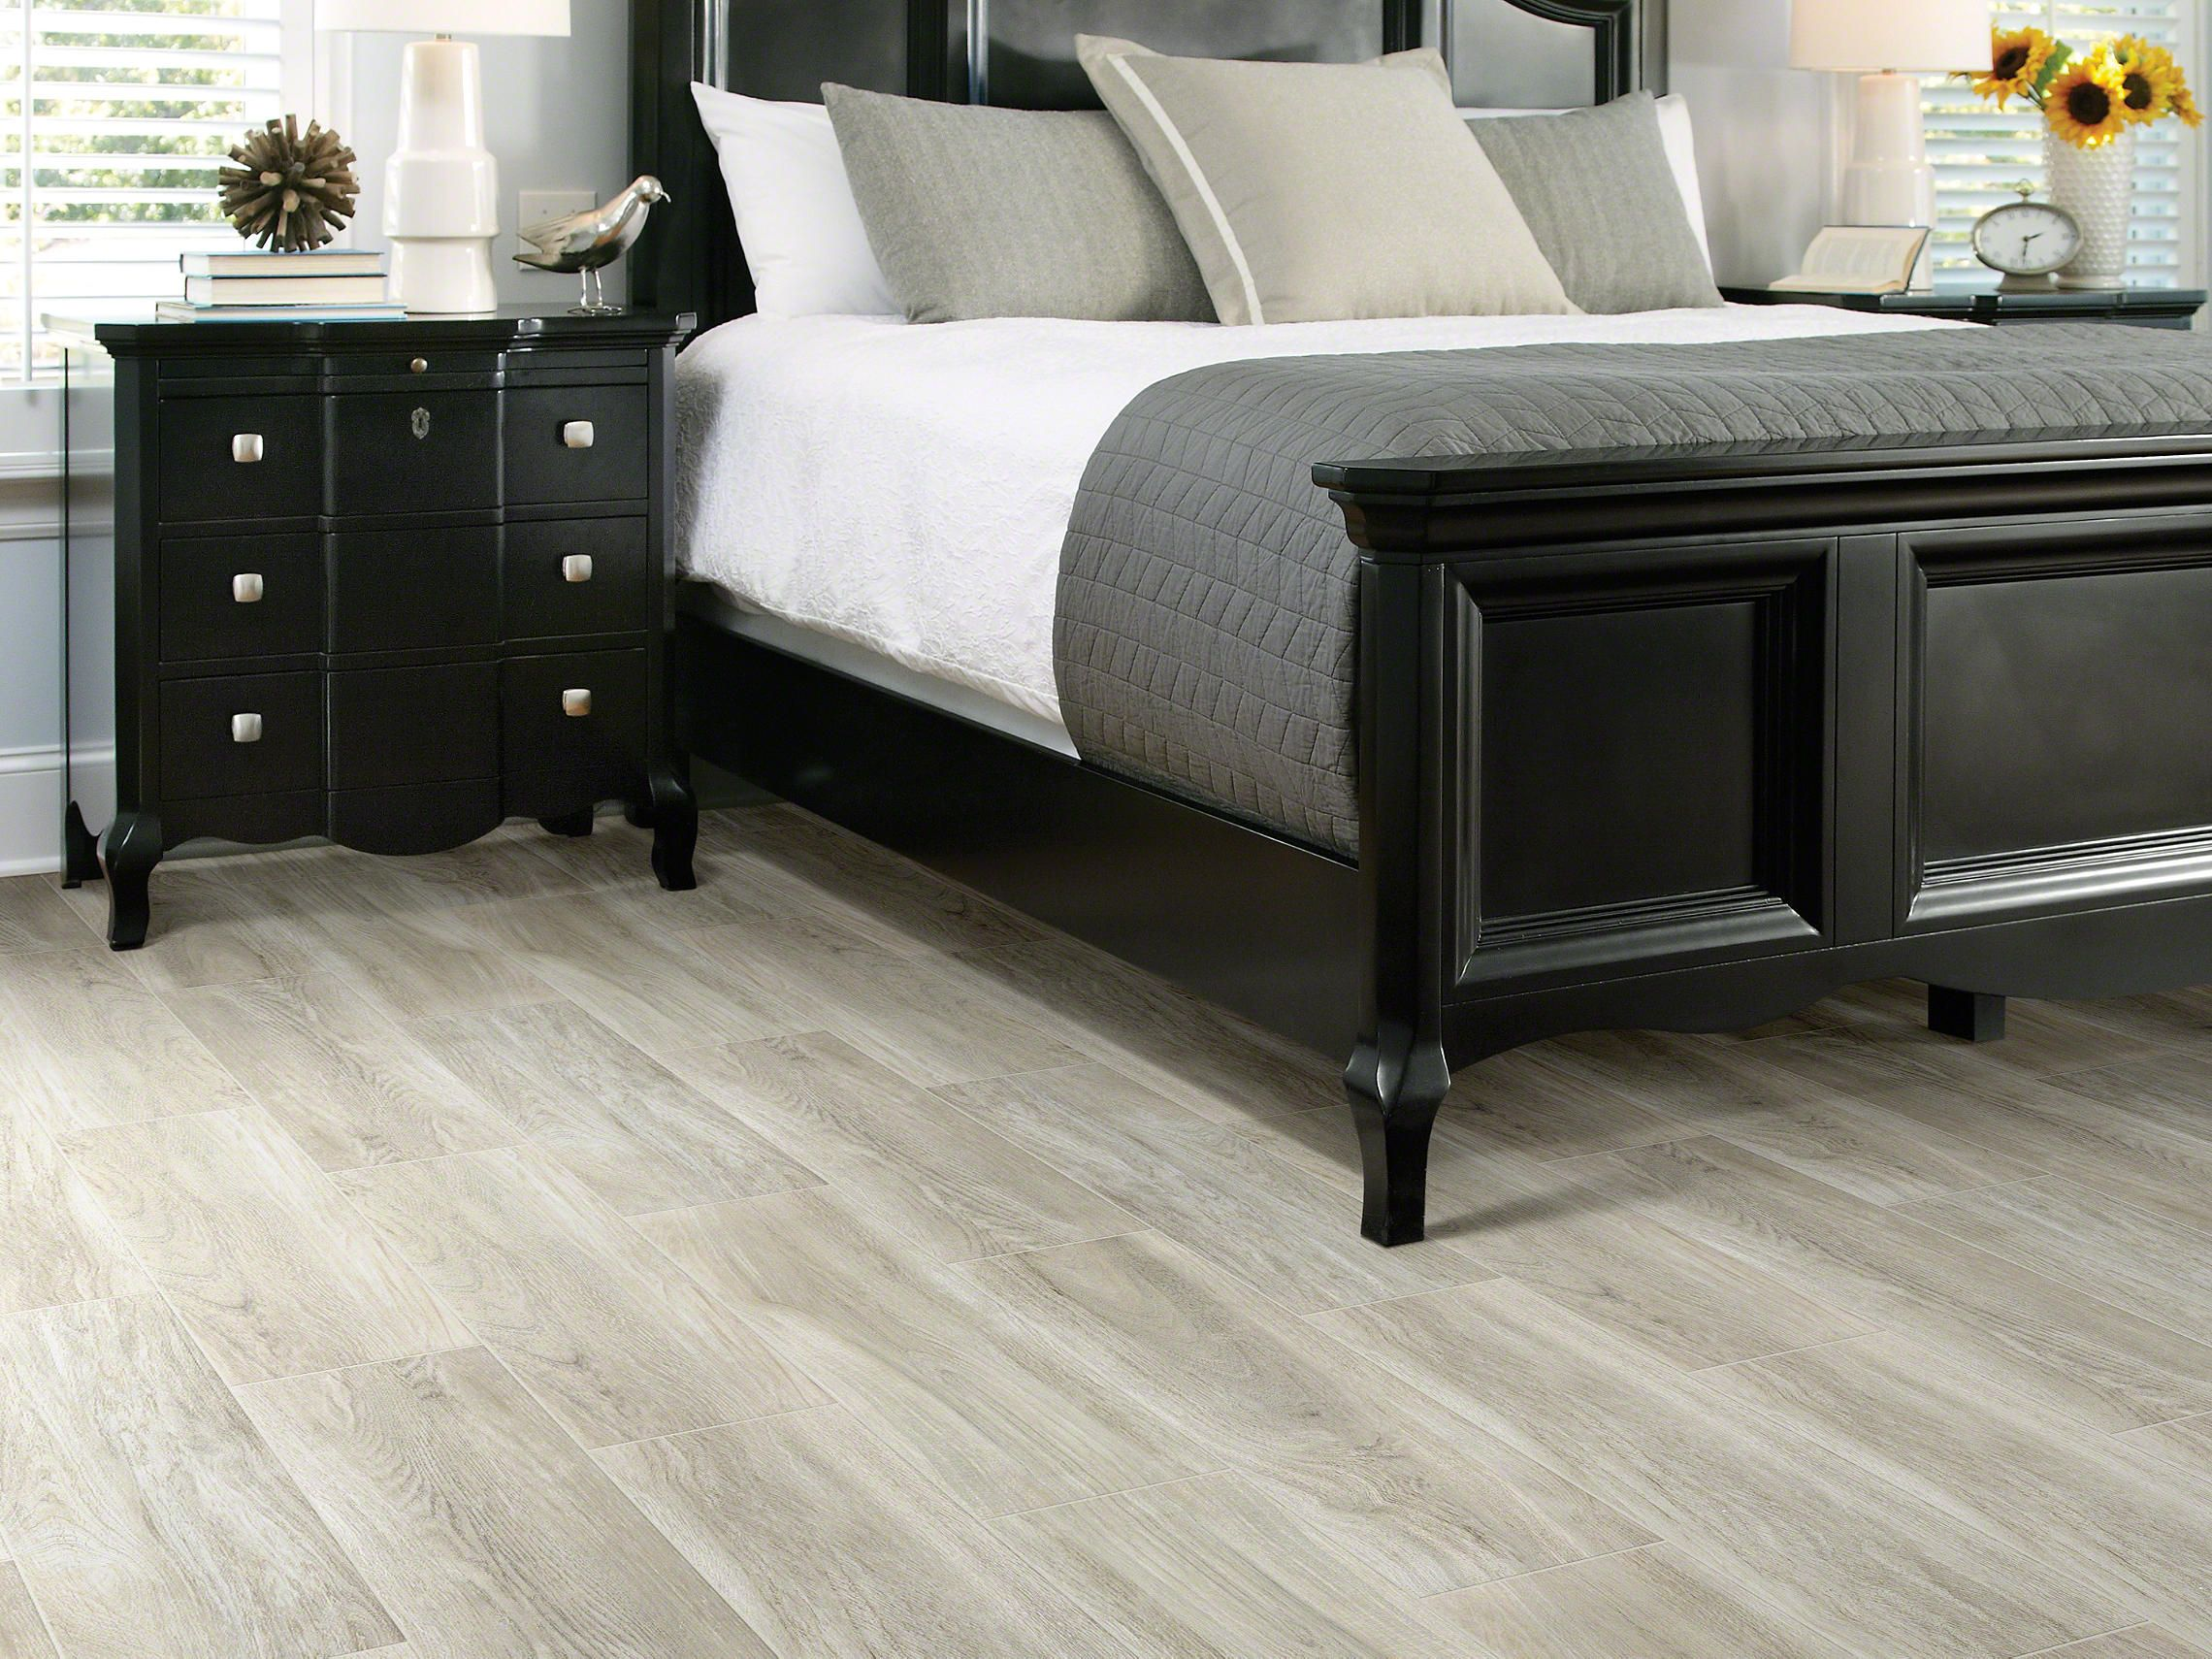 beautiful shaw wood look tile- perfectly calm and soothing warm